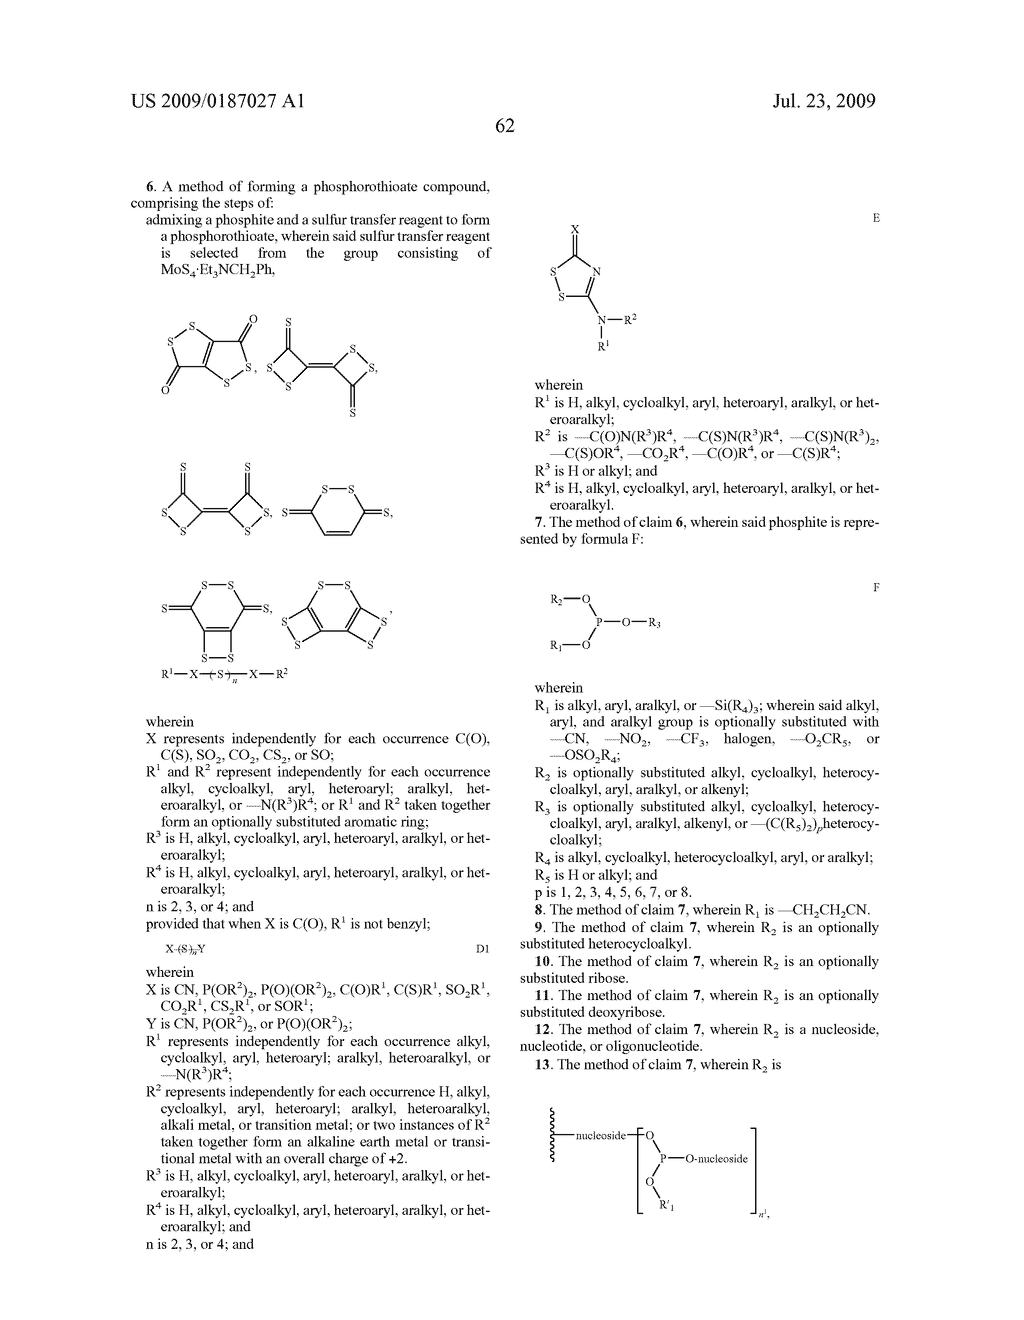 PROCESSES AND REAGENTS FOR SULFURIZATION OF OLIGONUCLEOTIDES - diagram, schematic, and image 114